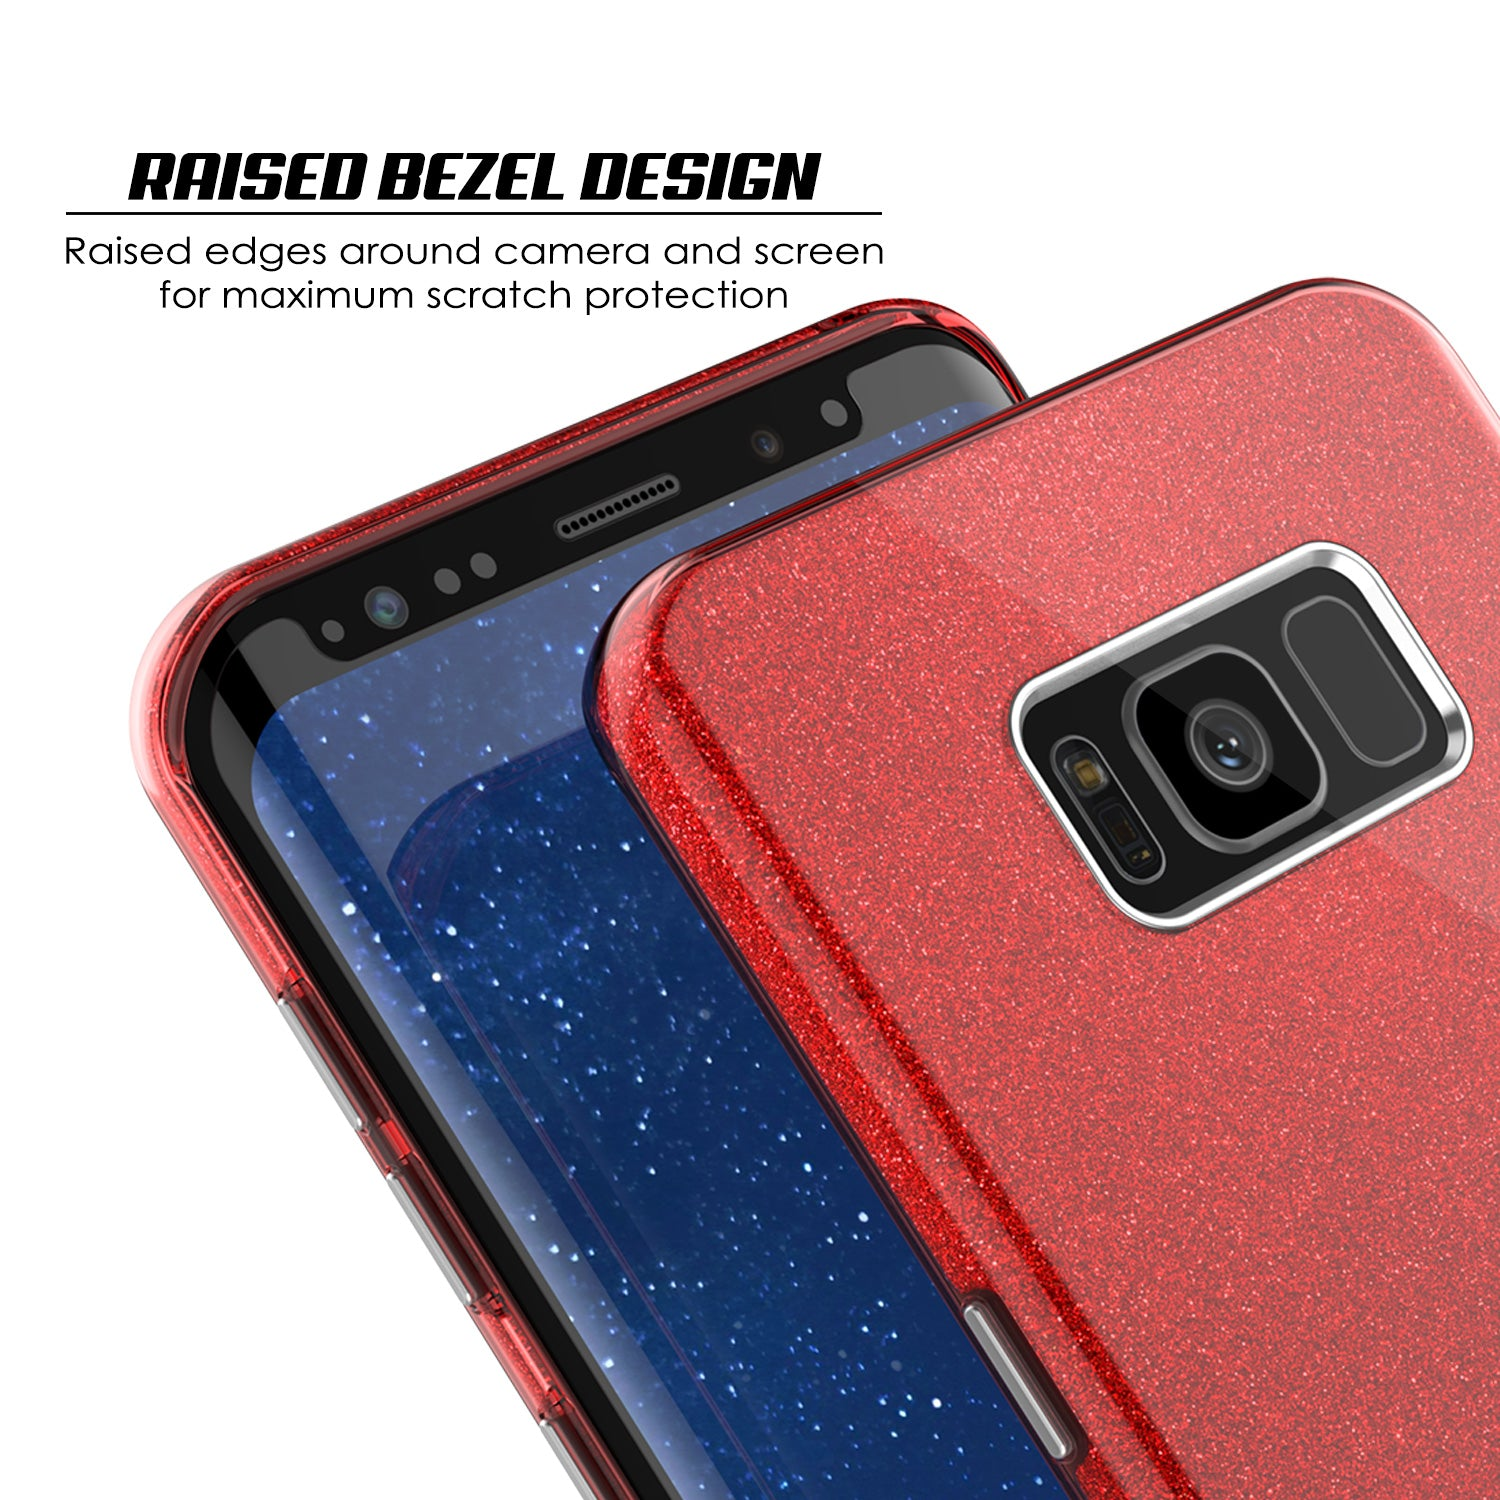 Galaxy S8 Case, Punkcase Galactic 2.0 Series Ultra Slim Protective Armor TPU Cover w/ PunkShield Screen Protector [Red]